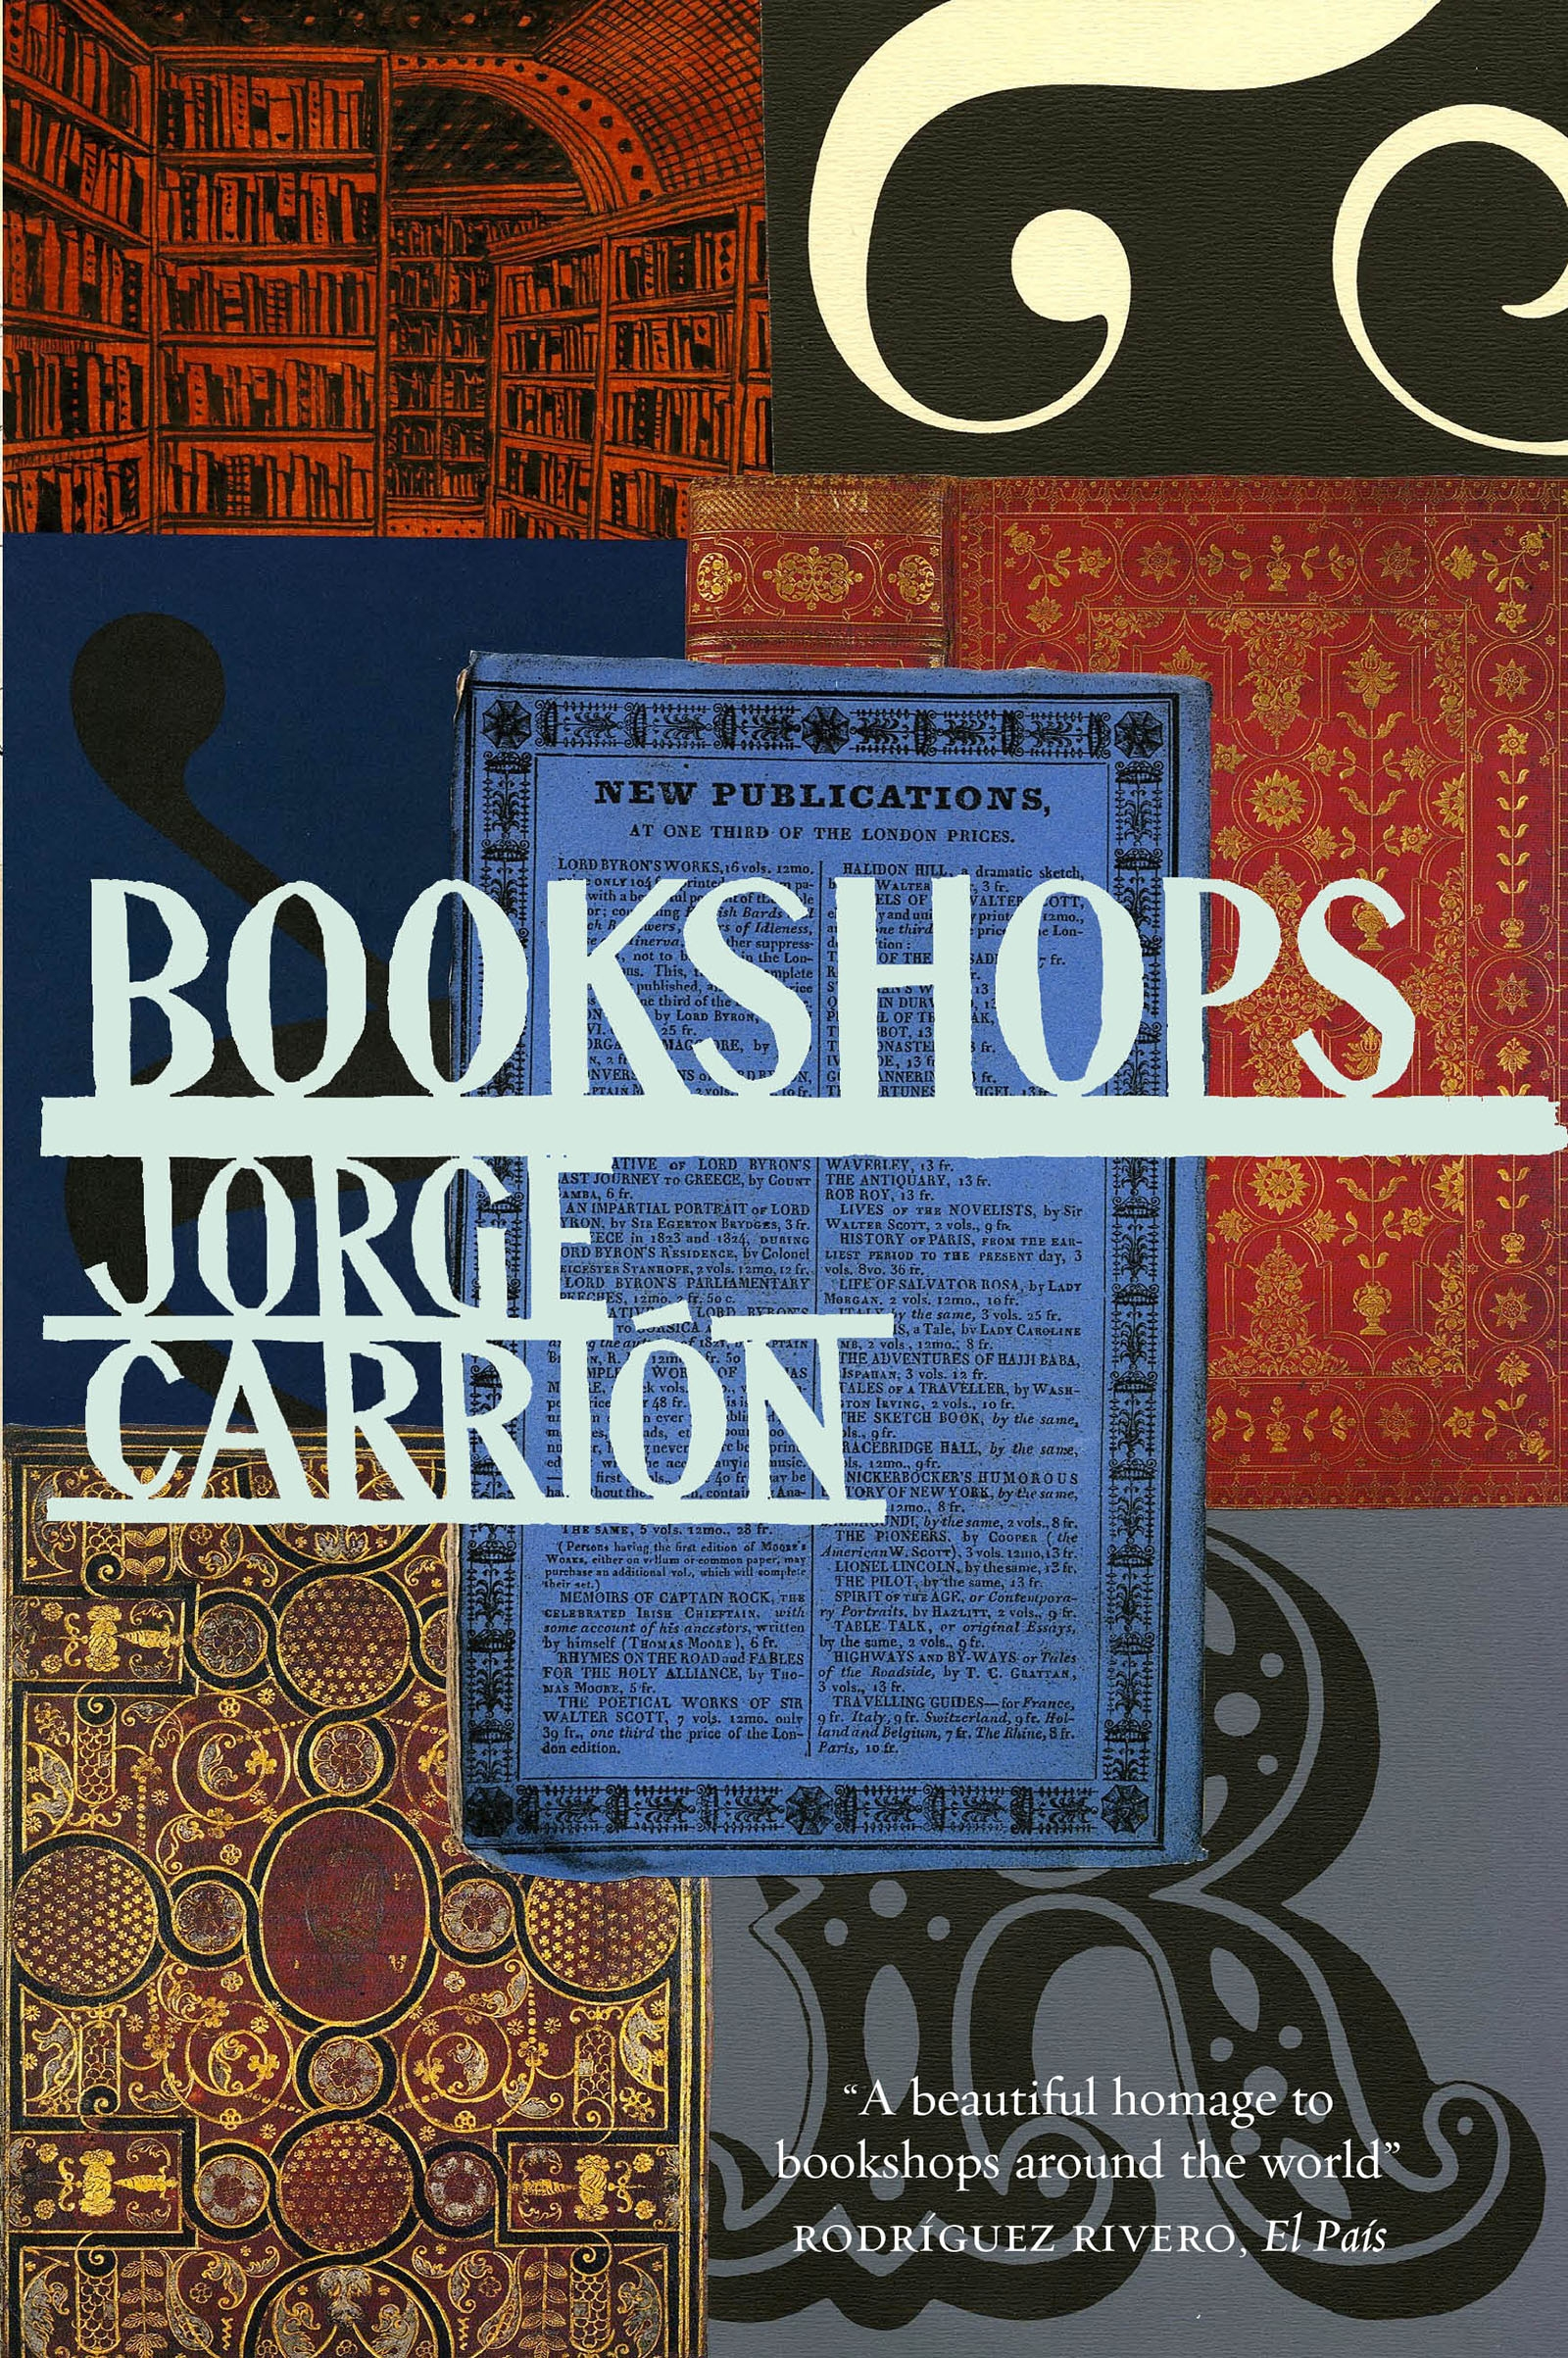 Bookshops by Jorge Carrión, ISBN: 9780857054449